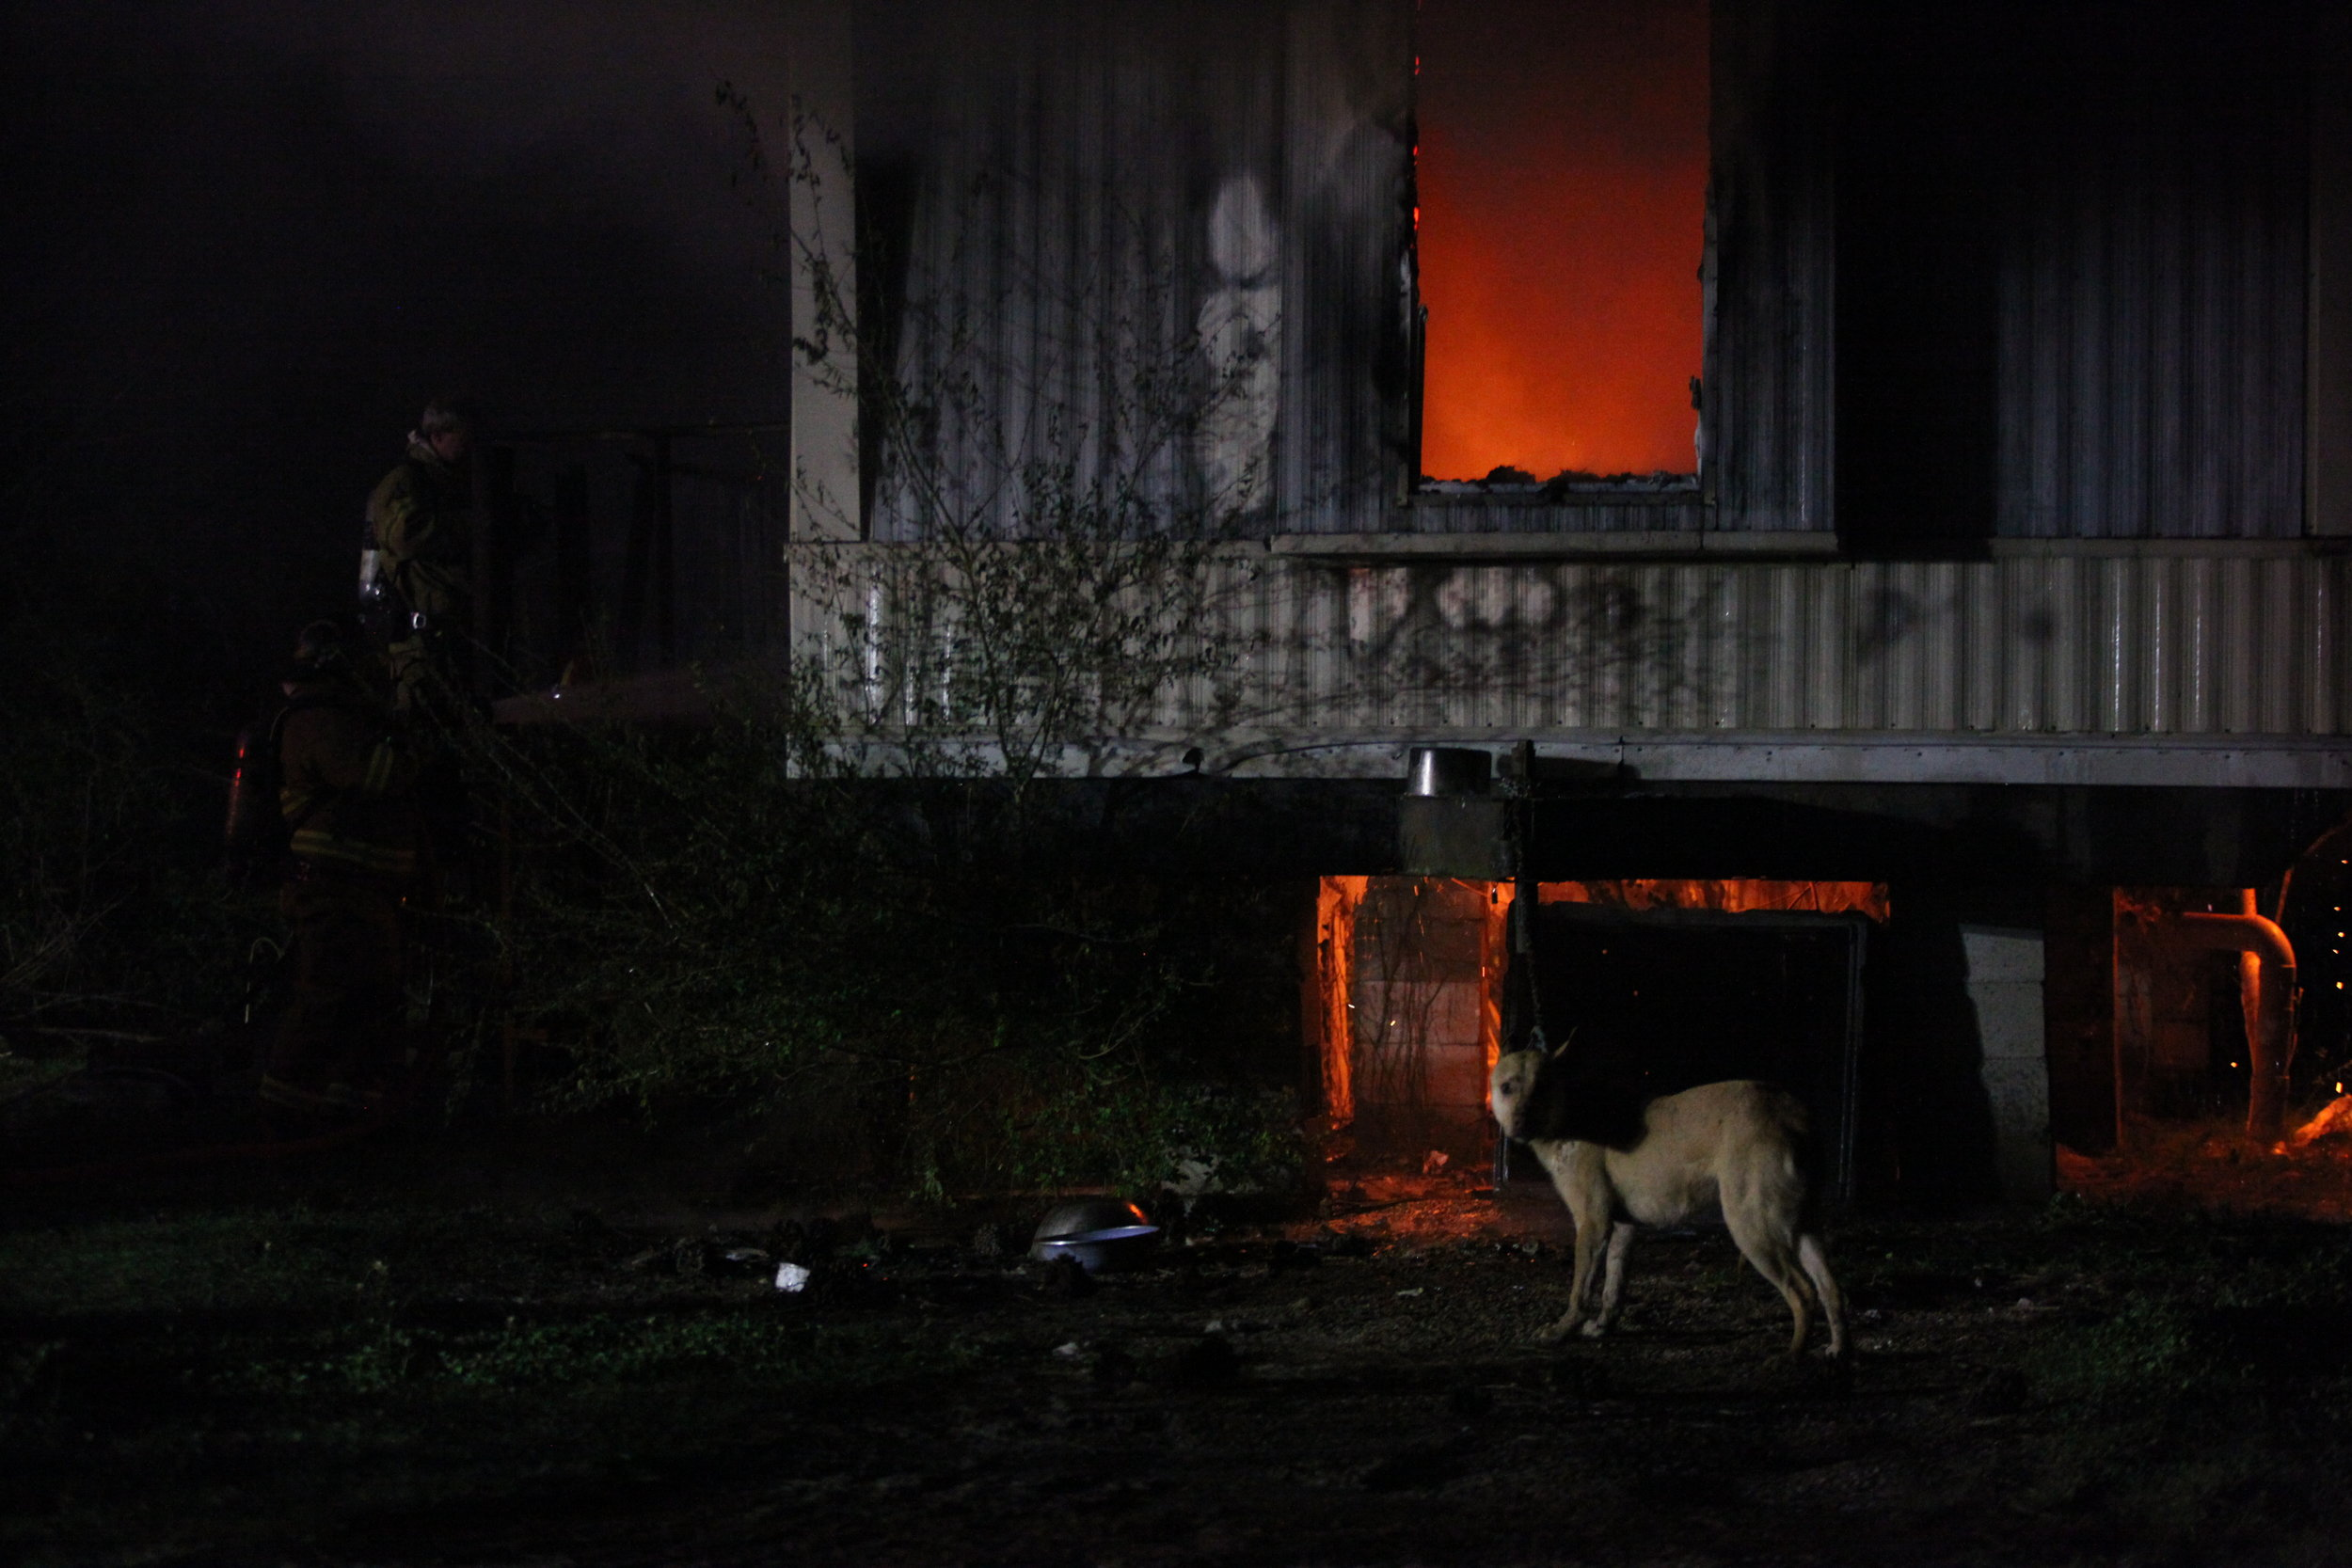 A dog is seen chained to a trailer as Vicksburg Fire Department attempts to extinguish a fire that occurred at 500 Hall Road around 9 p.m. Friday. The cause of the fire is unknown with no known injuries. The dog was eventually cut free from the chain. (Courtland Wells | The Vicksburg Post)